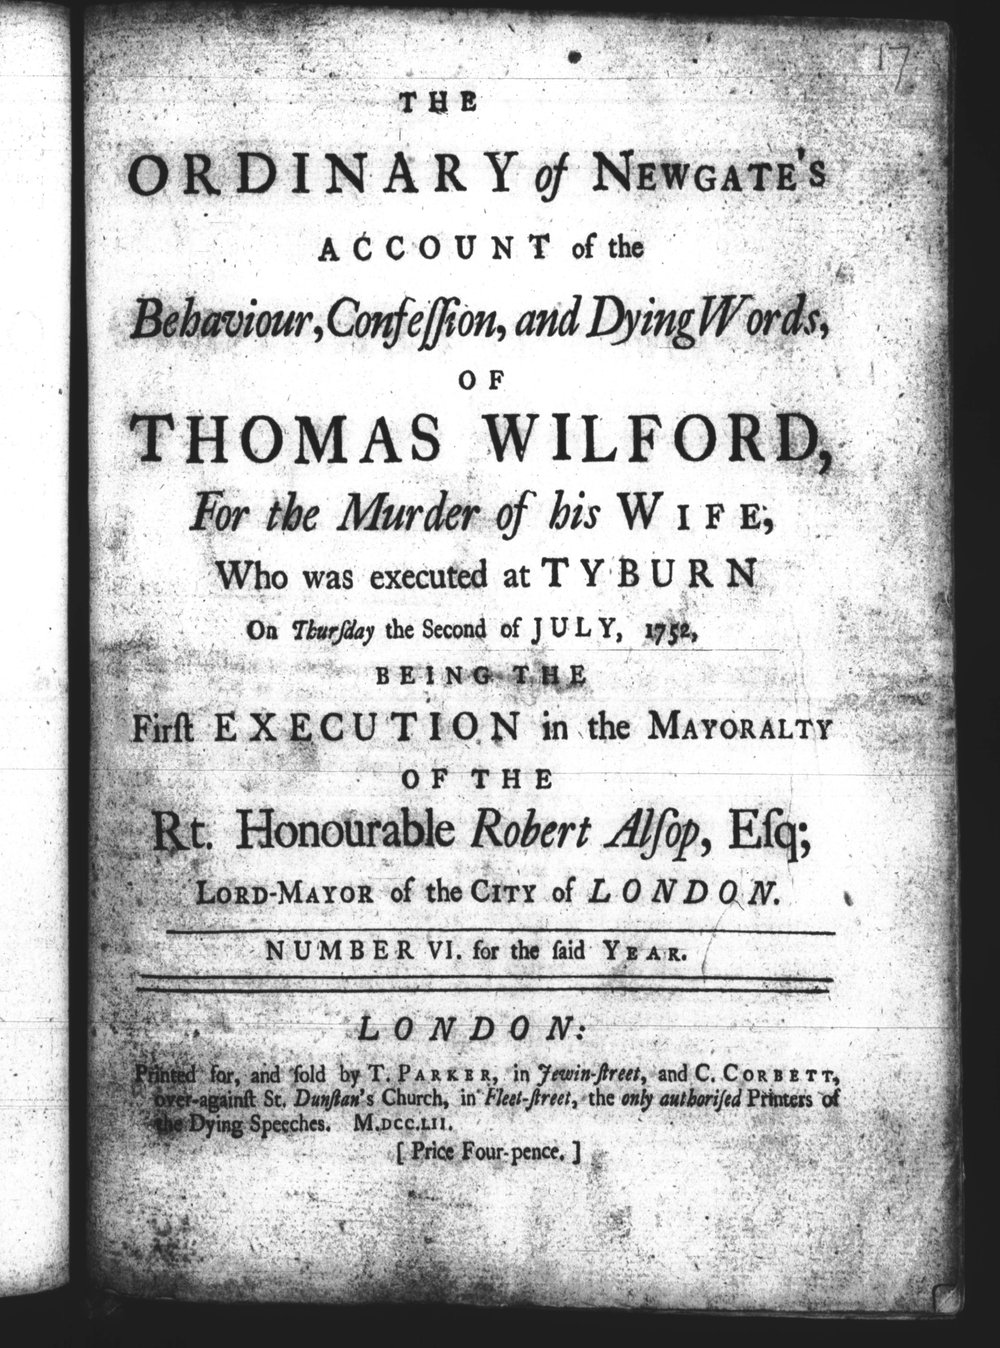 The Ordinary of Newgate's Account of the behaviour, confession and dying words of Thomas Wilford. Image courtesy of Old Bailey Online.